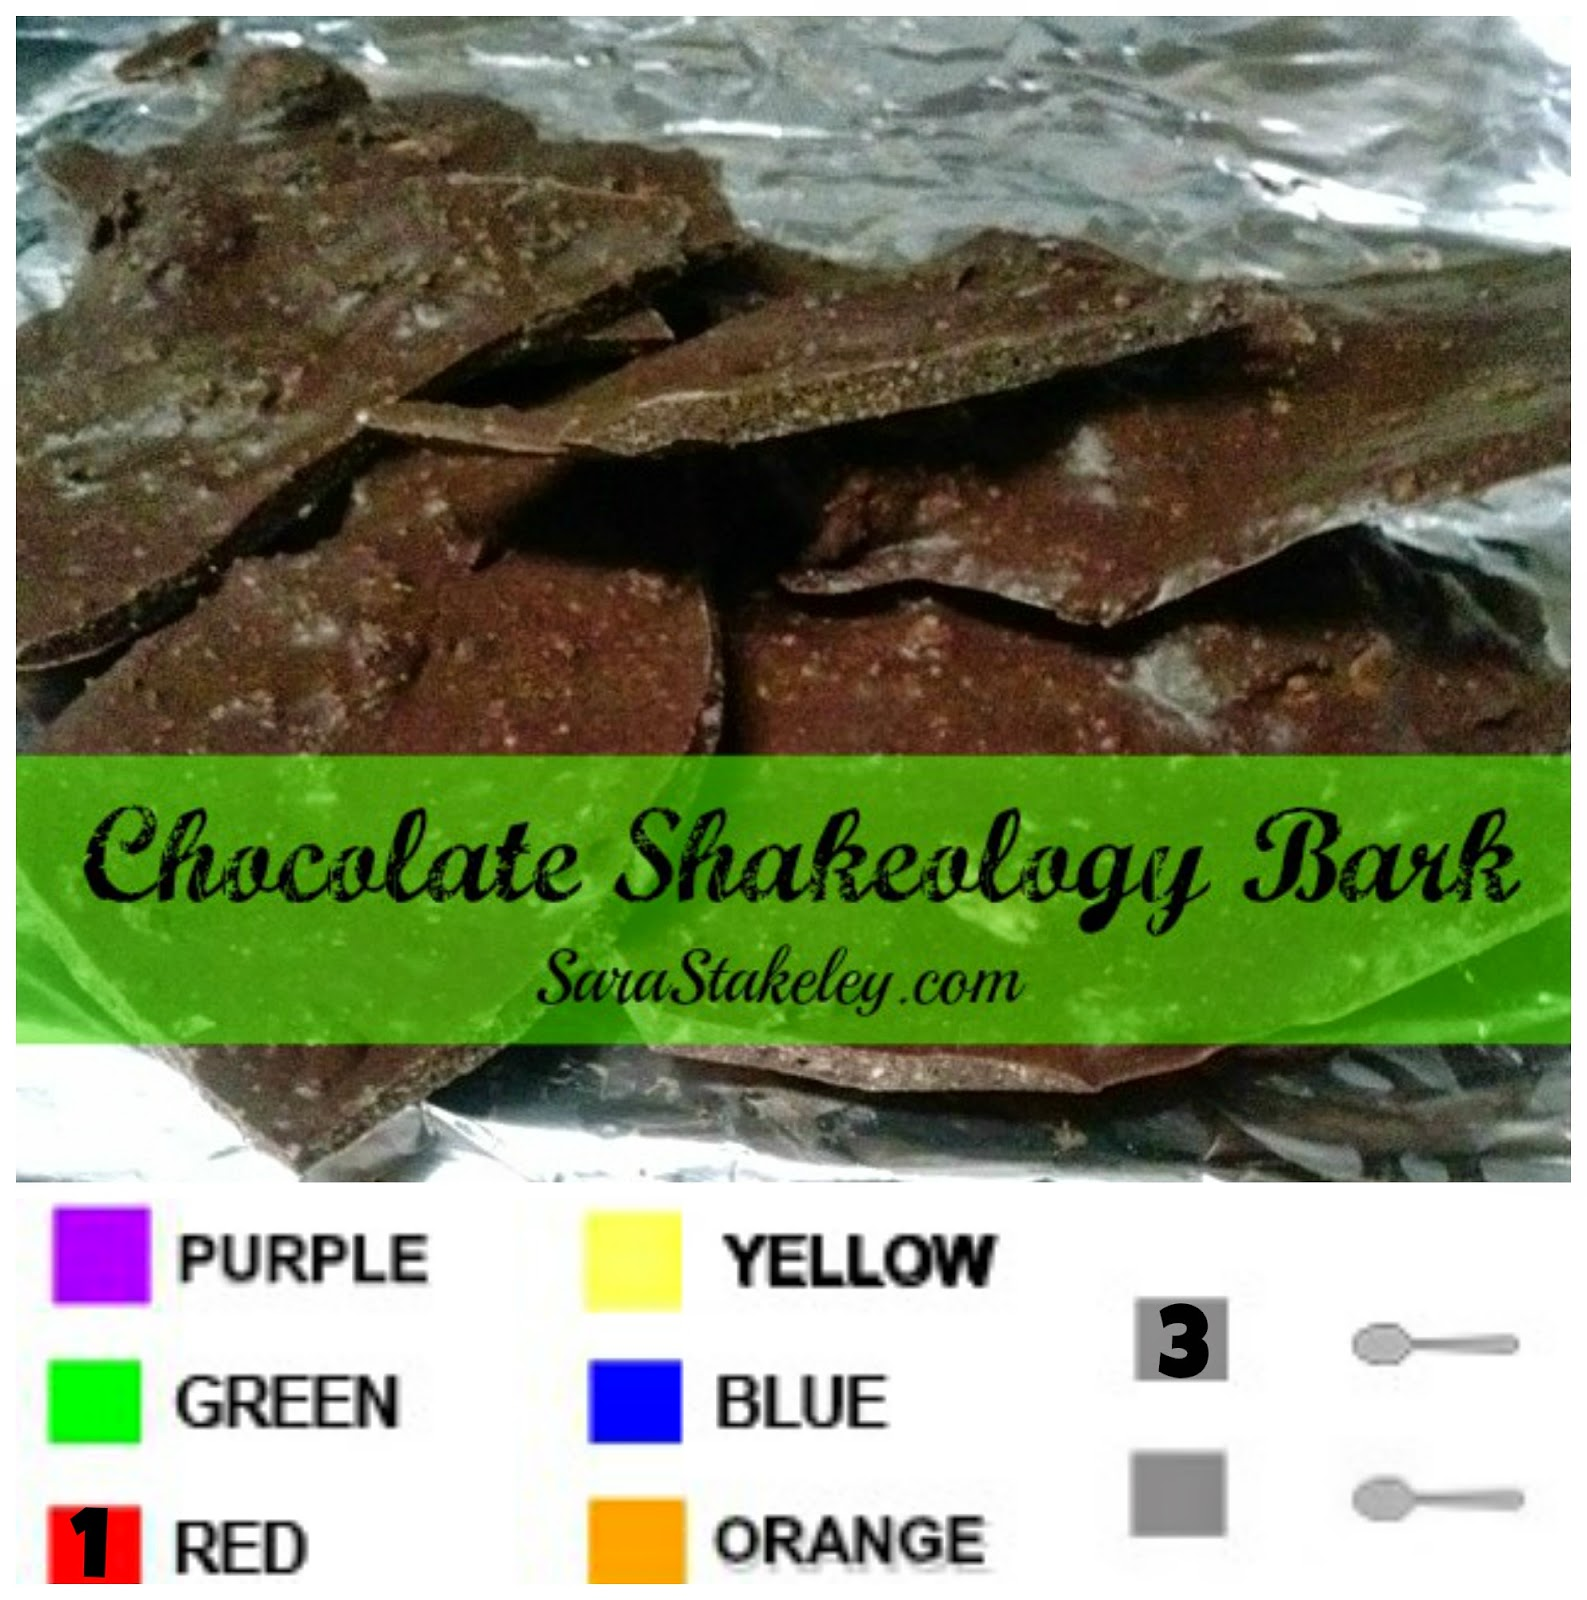 Chocolate Shakeology Bark, 21 Day Fix Desert, 21 Day fix coach, Sara Stakeley, Sarastakeley.com, Shakeology Desert